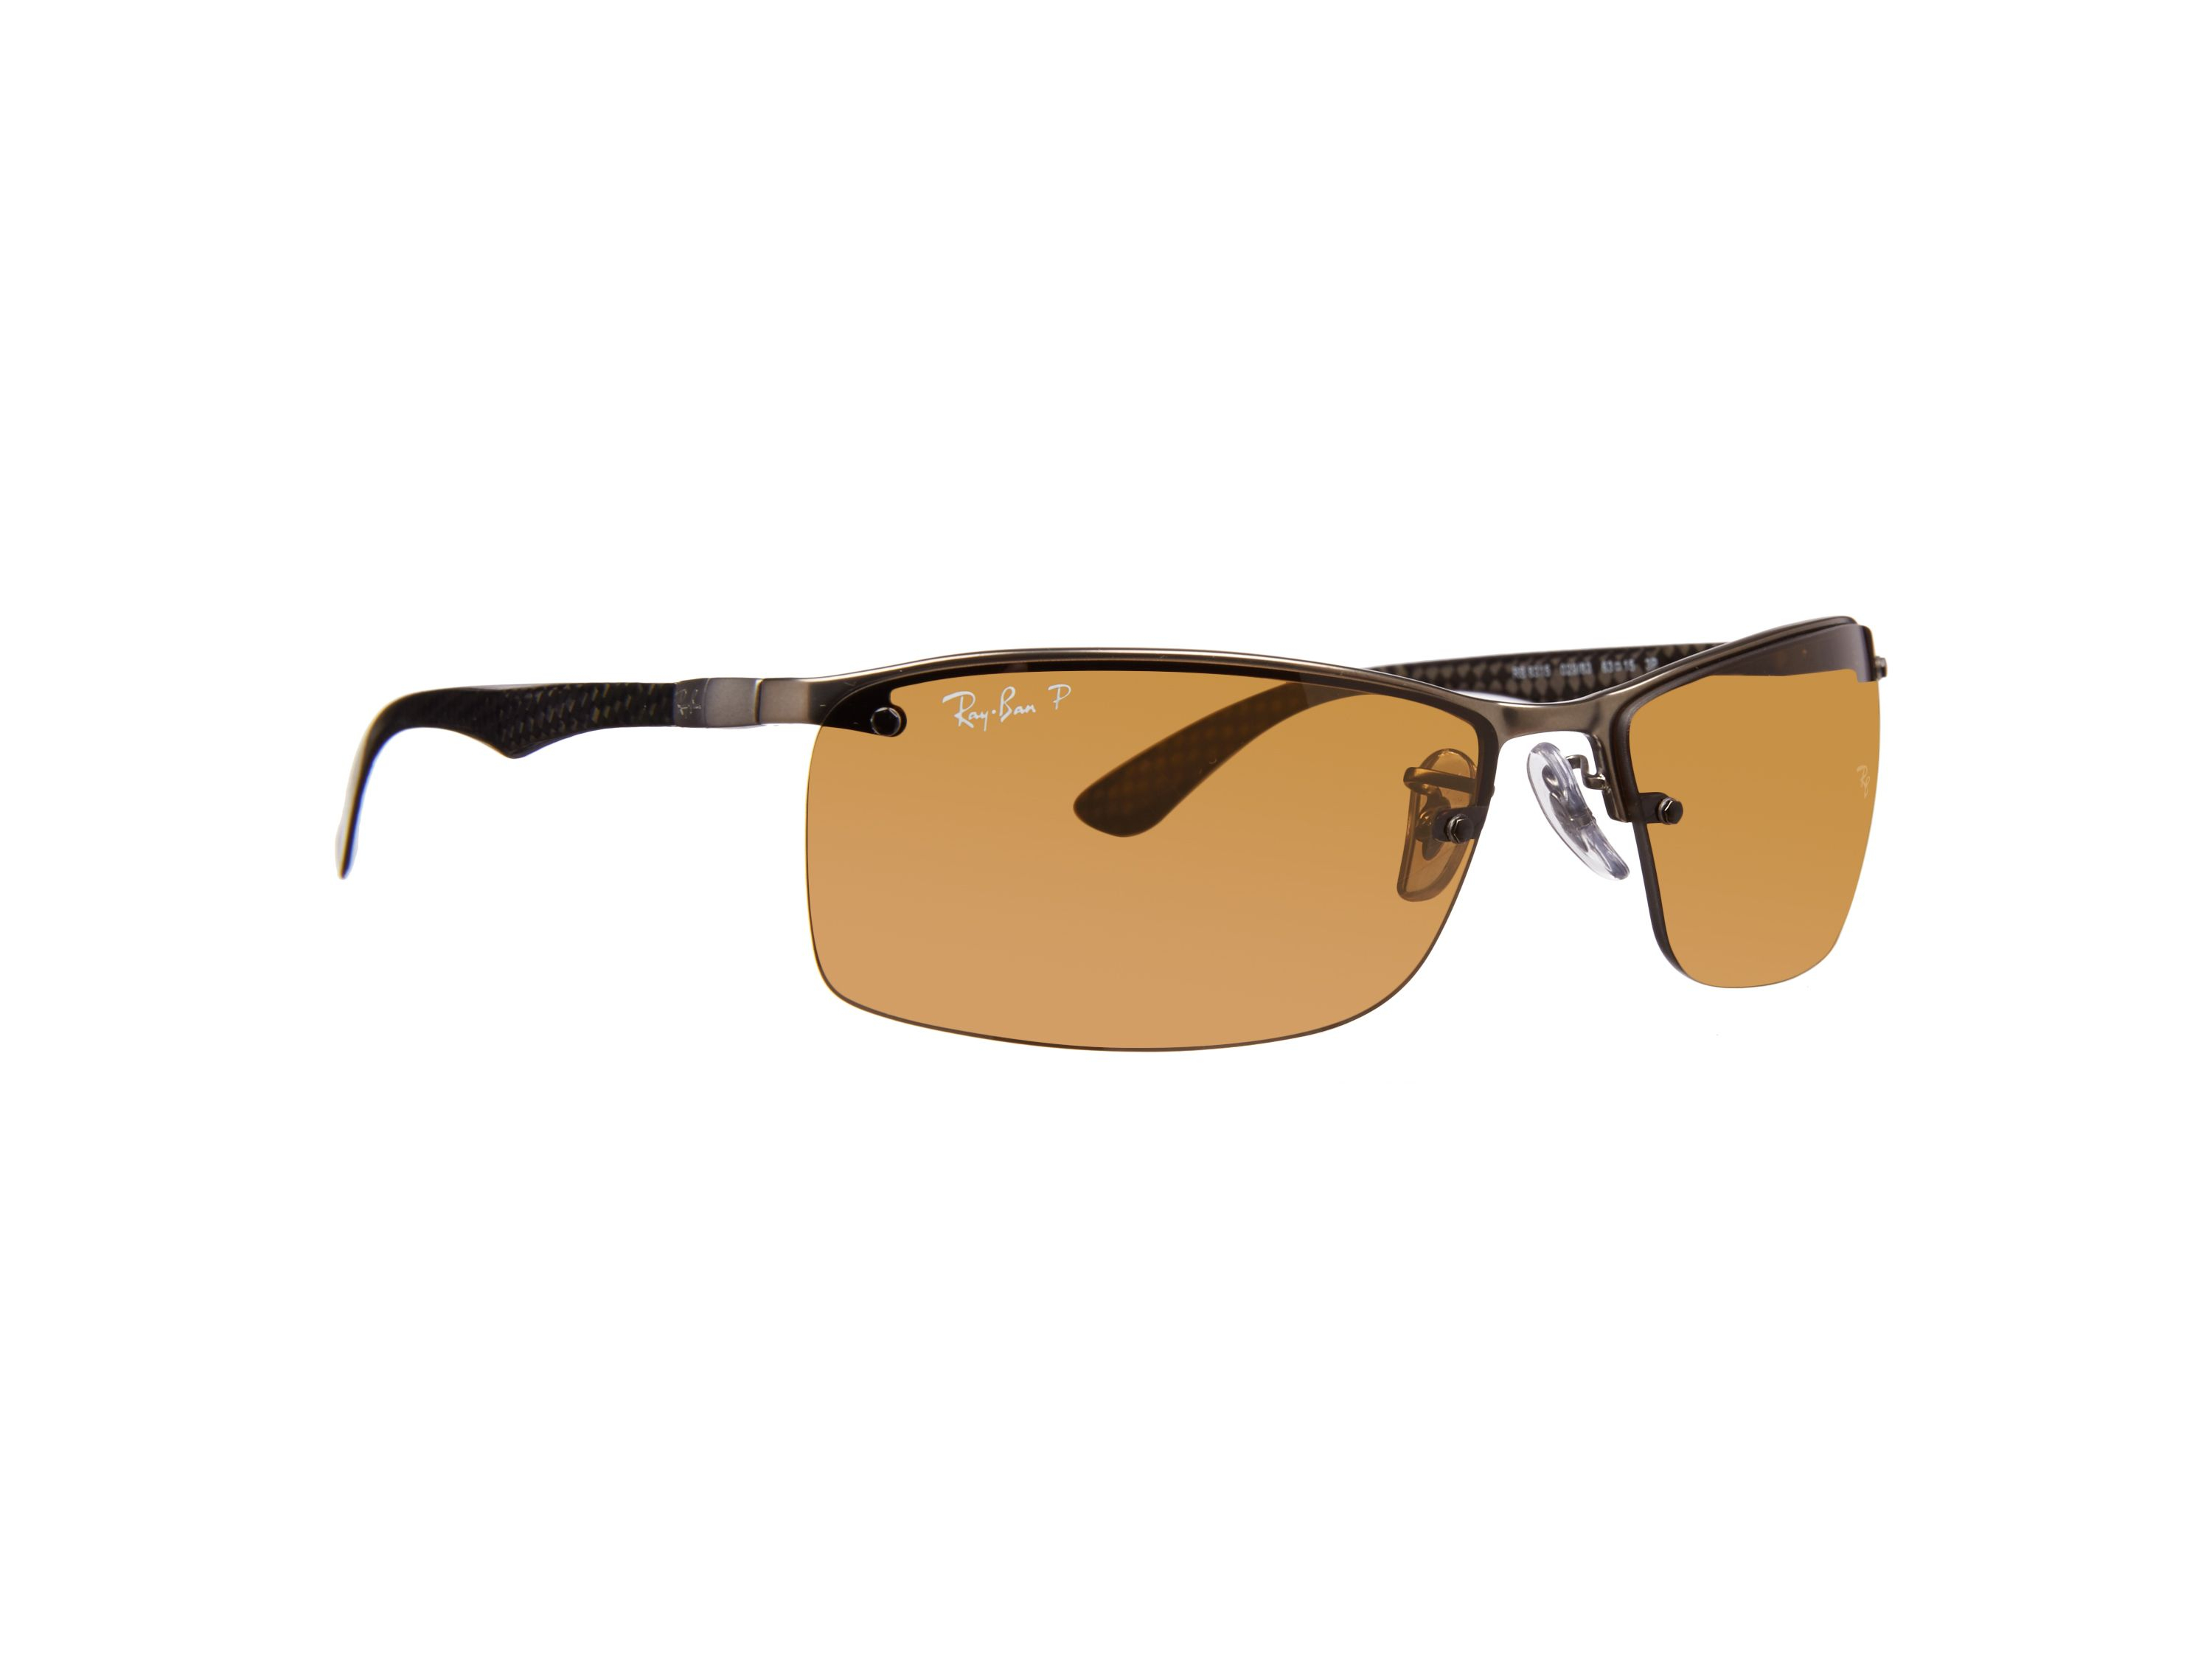 90f0ee1269 Ray Ban Cats Sunglasses Mens « Heritage Malta